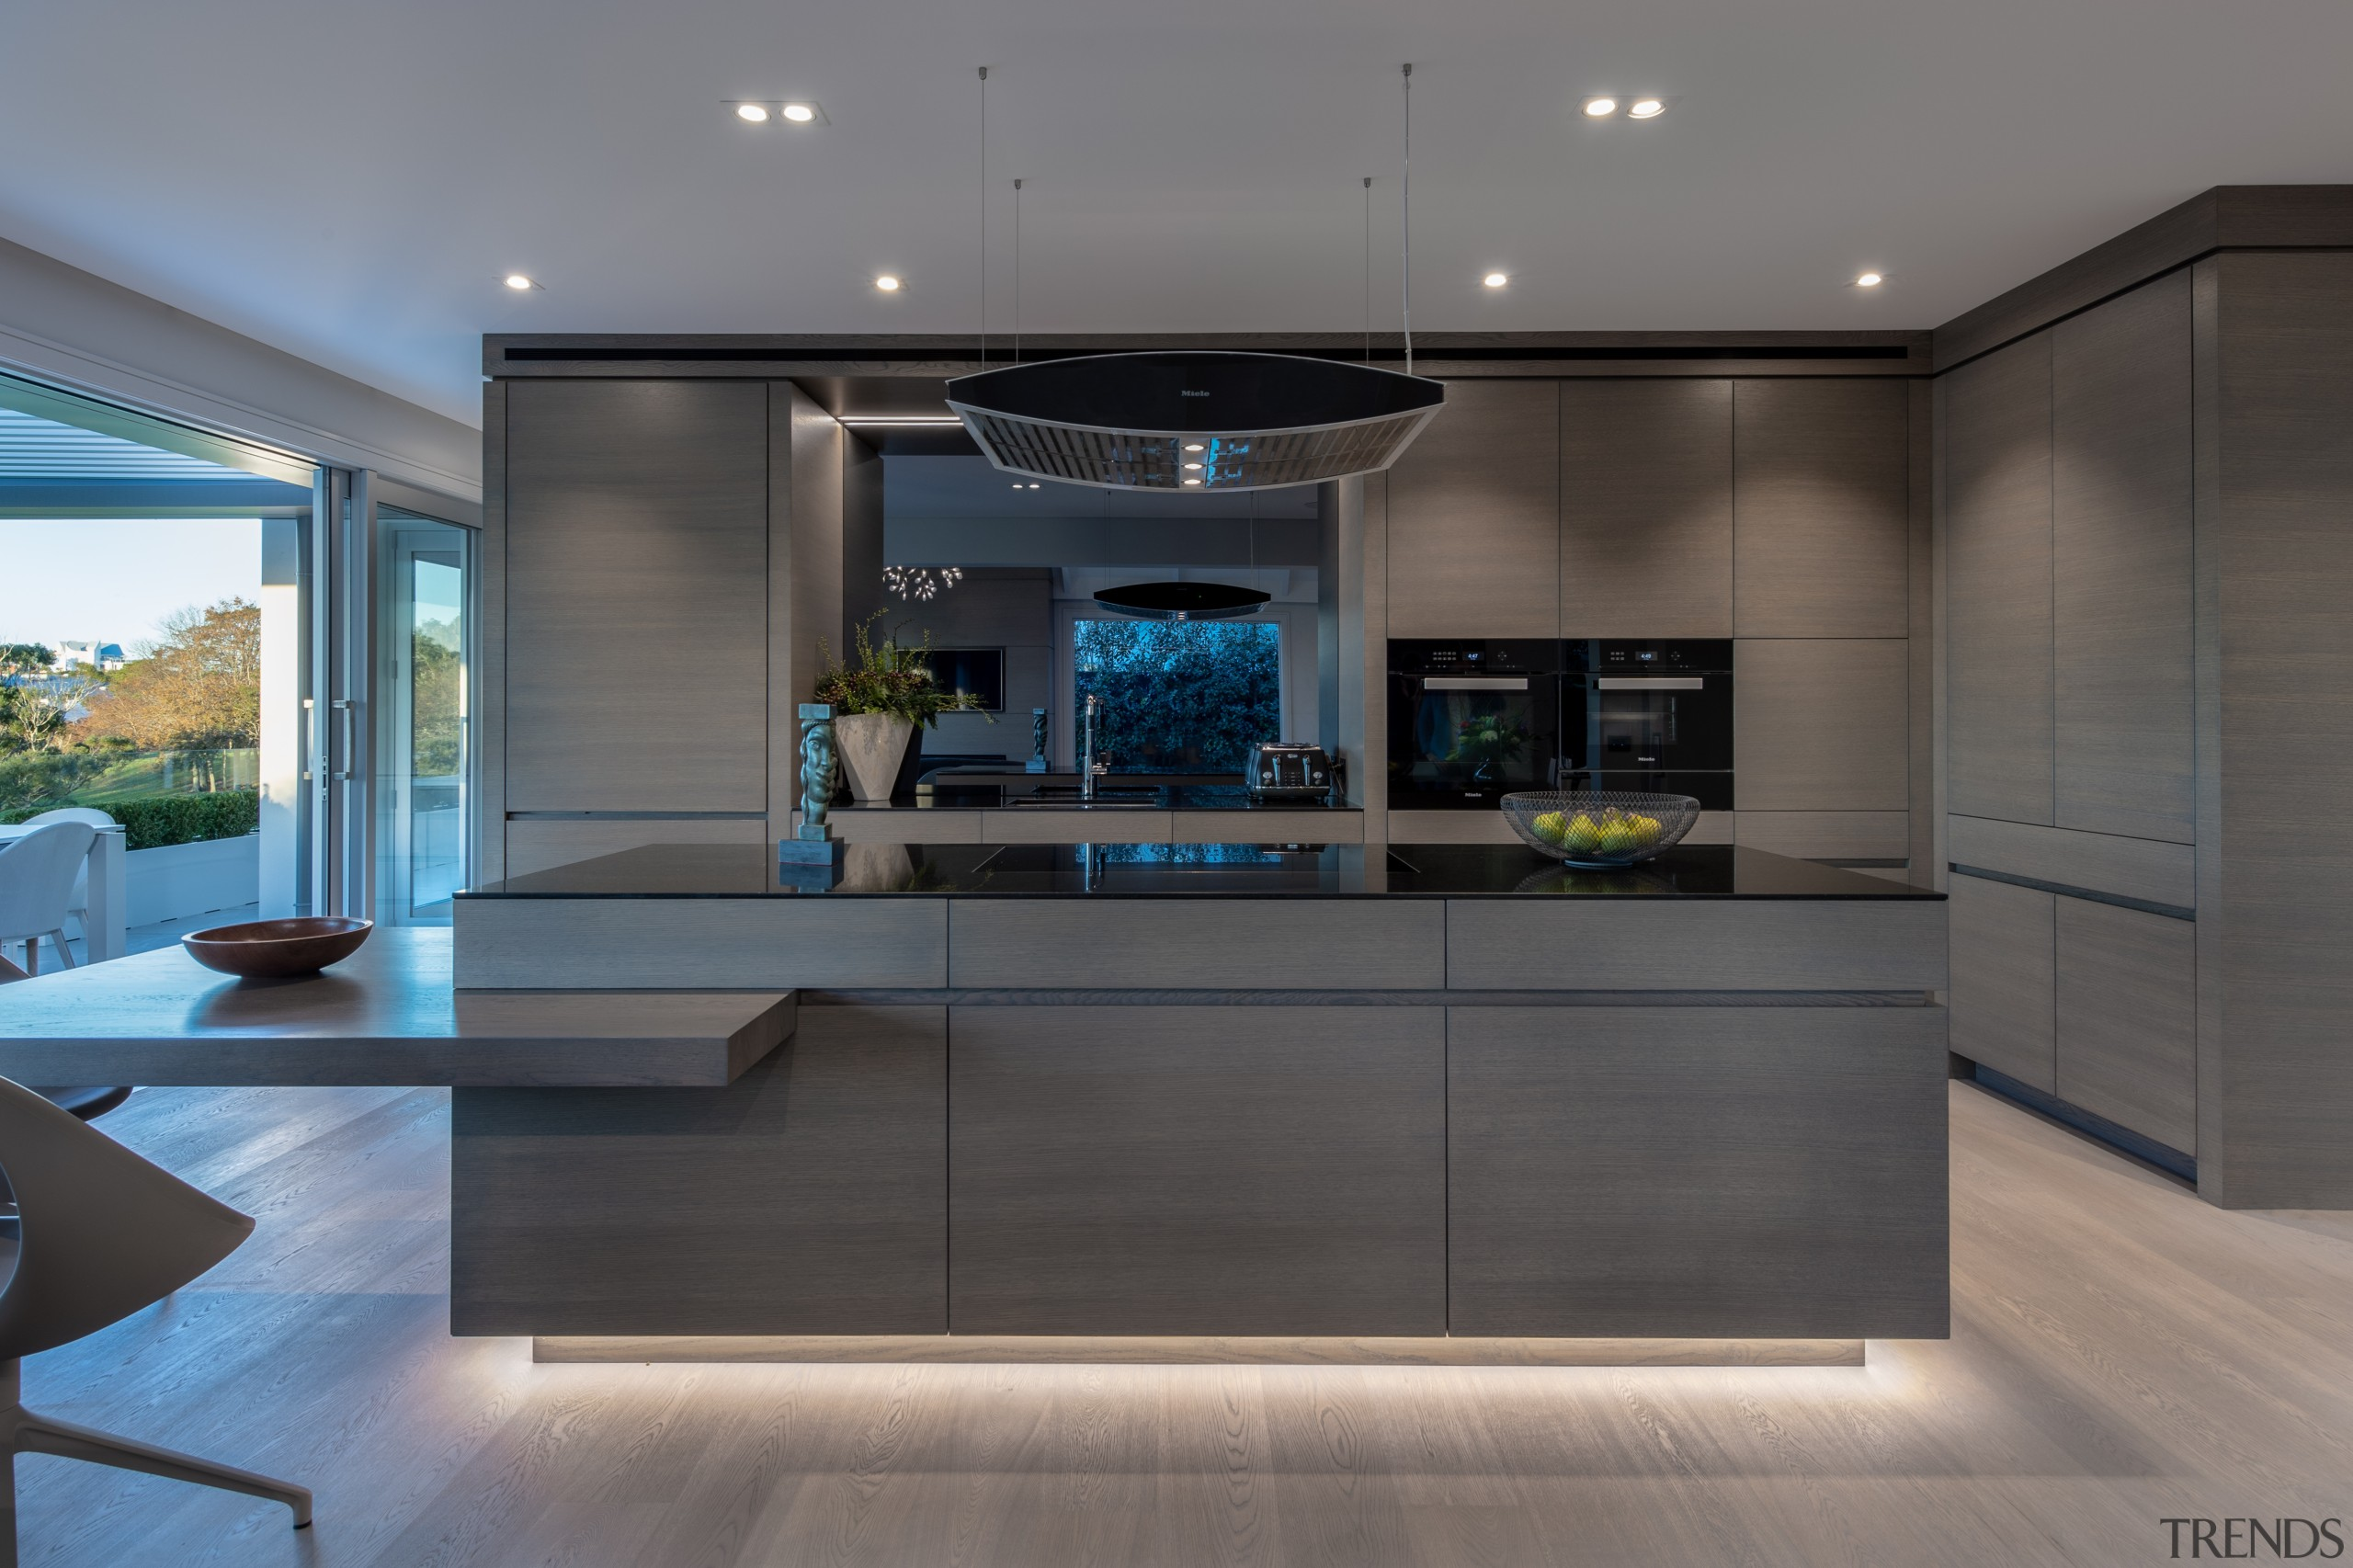 The pared-back kitchen cabinetry in this lakeside home